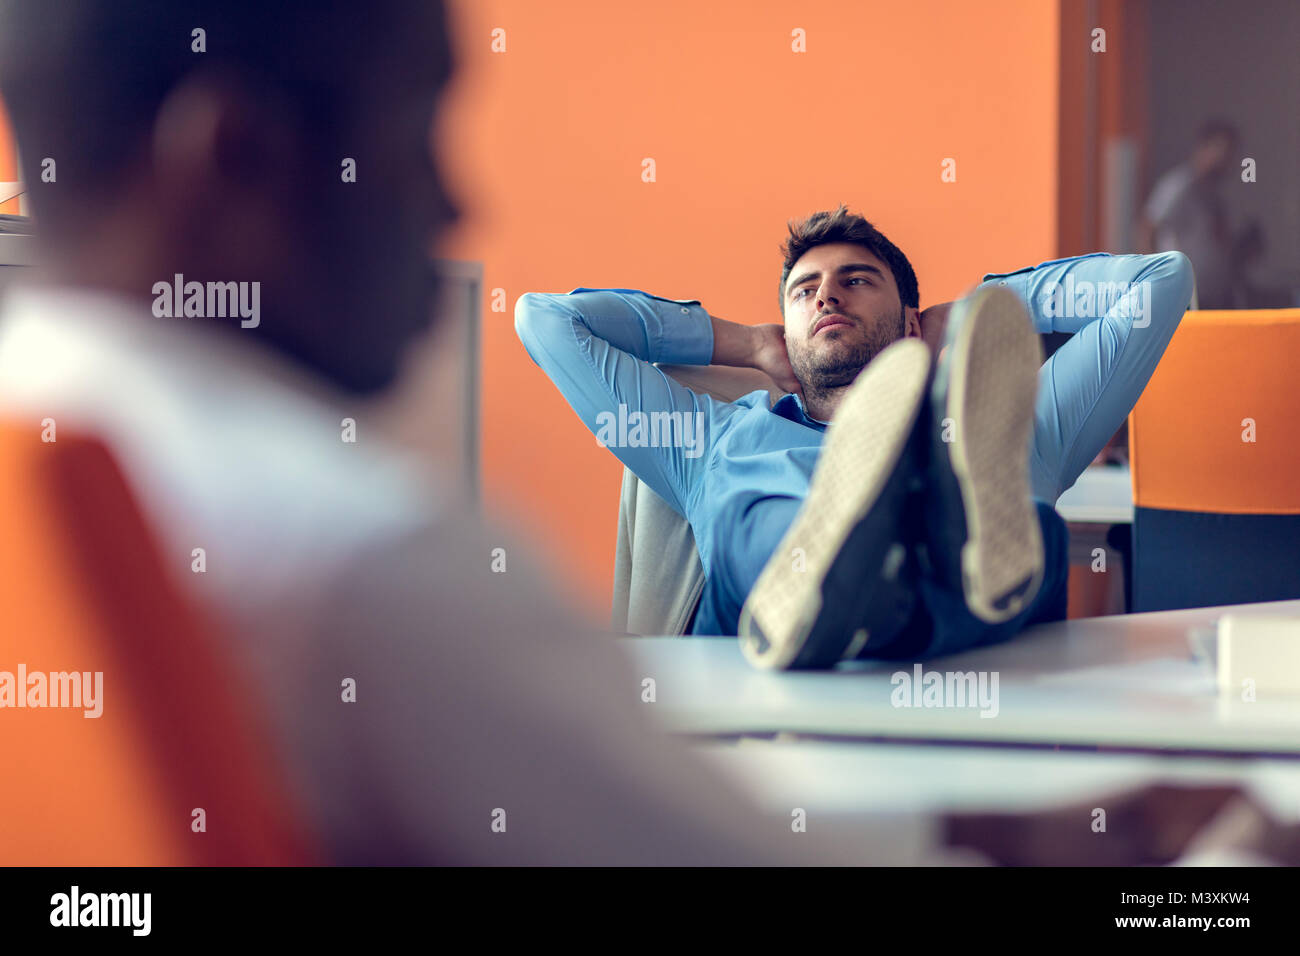 Taking time for a minute break. Cheerful young man holding hands behind head - Stock Image